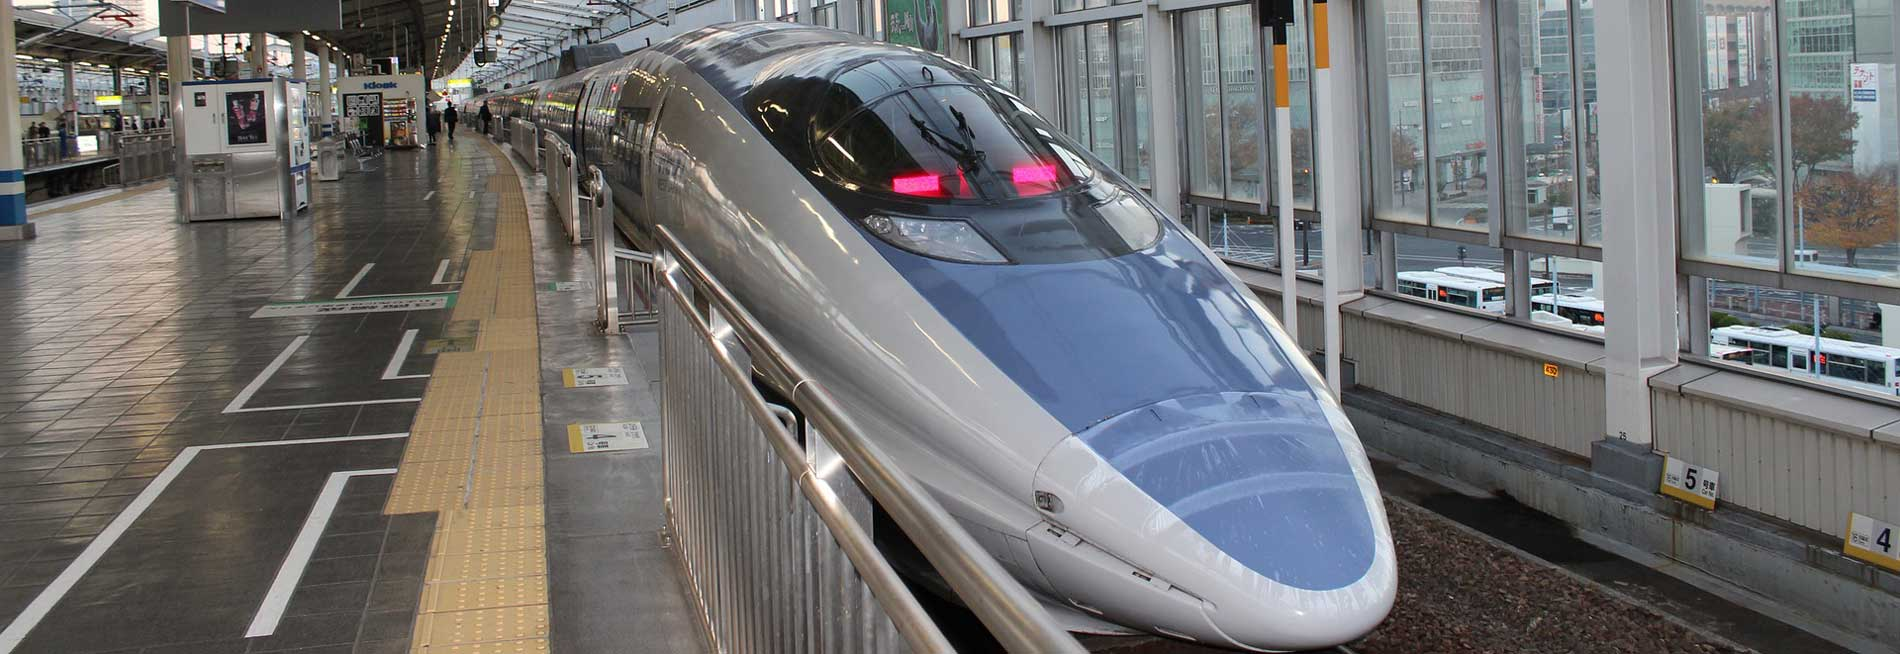 Where to Buy Japan Rail Pass and Is It Worth It?